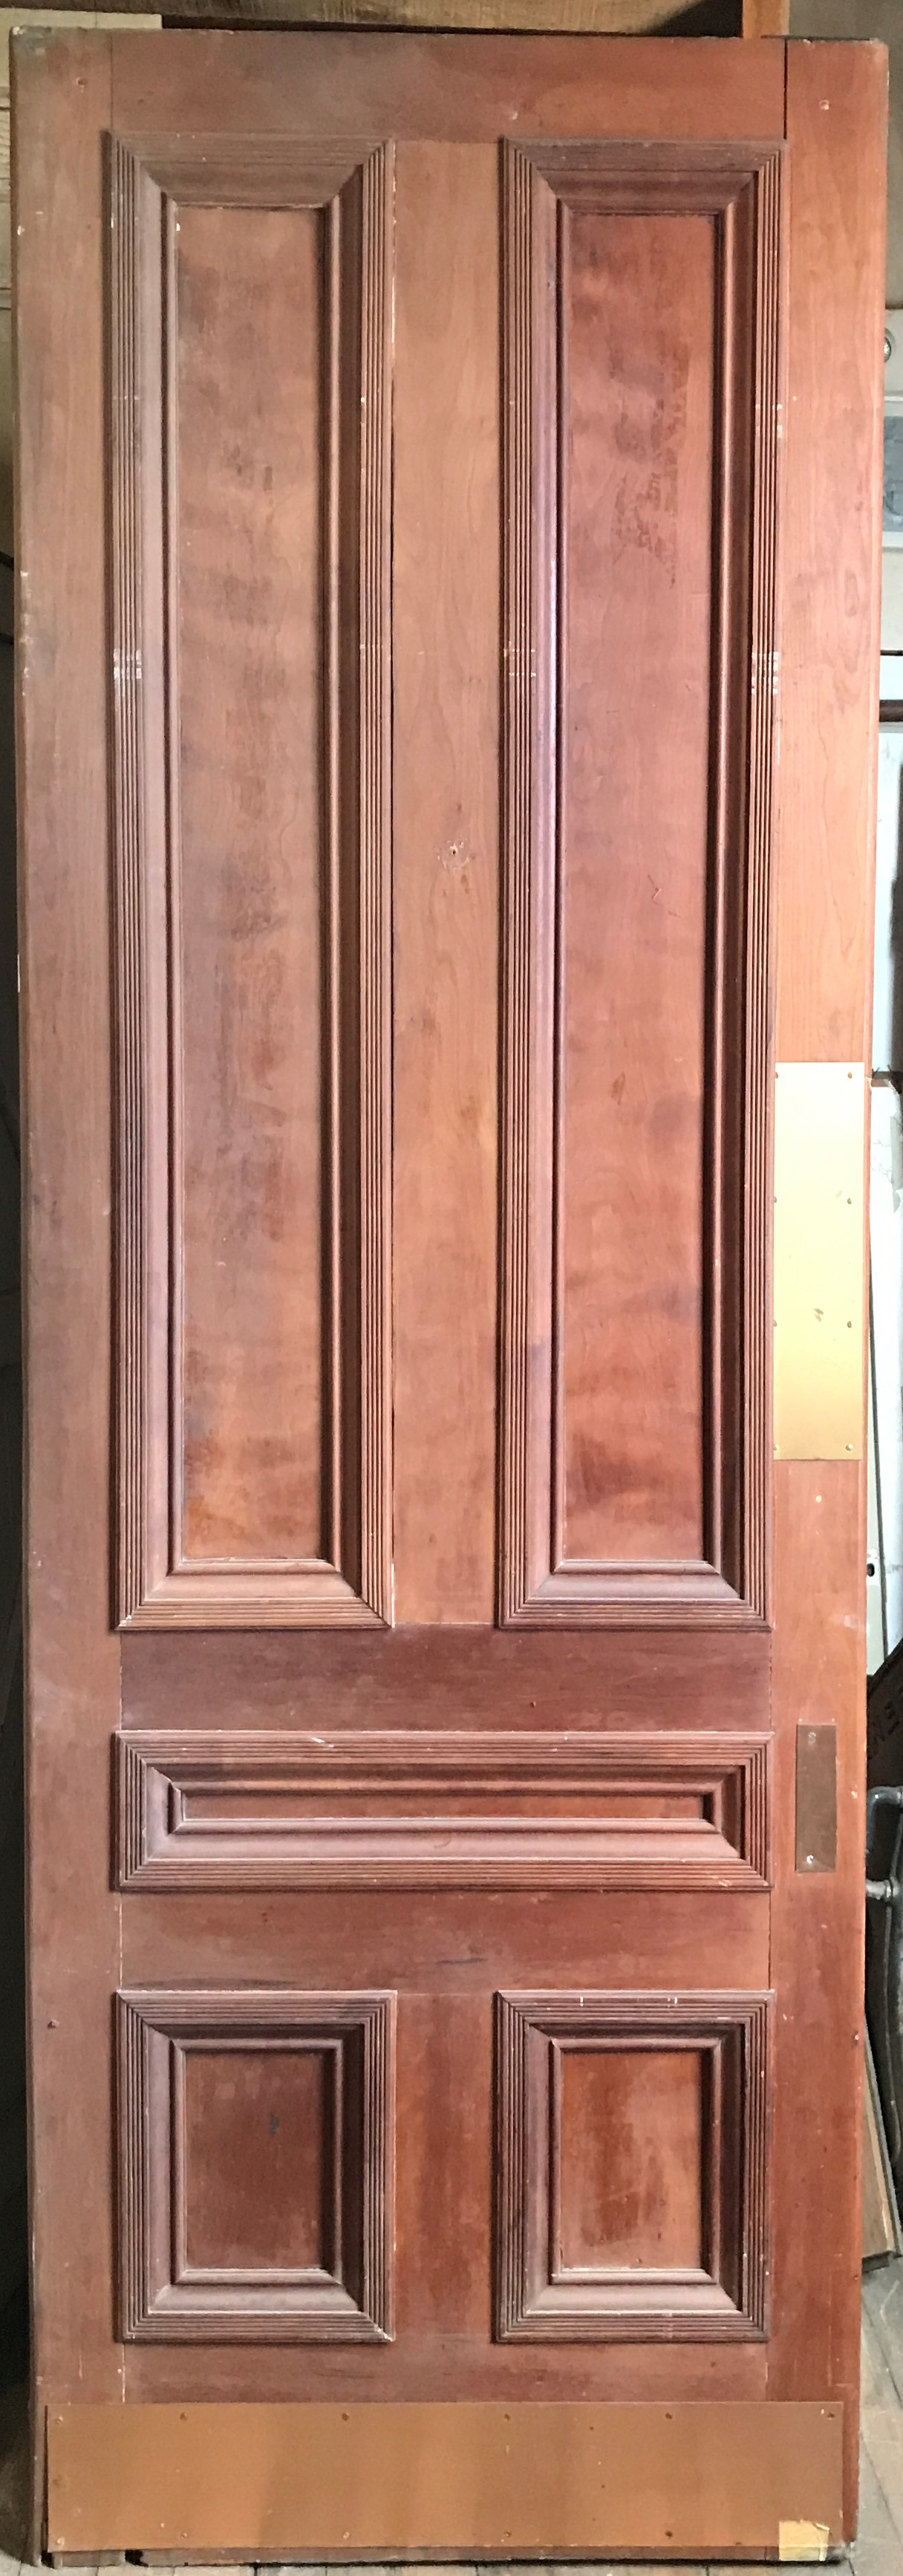 Oversized 5 Panel Interior Door